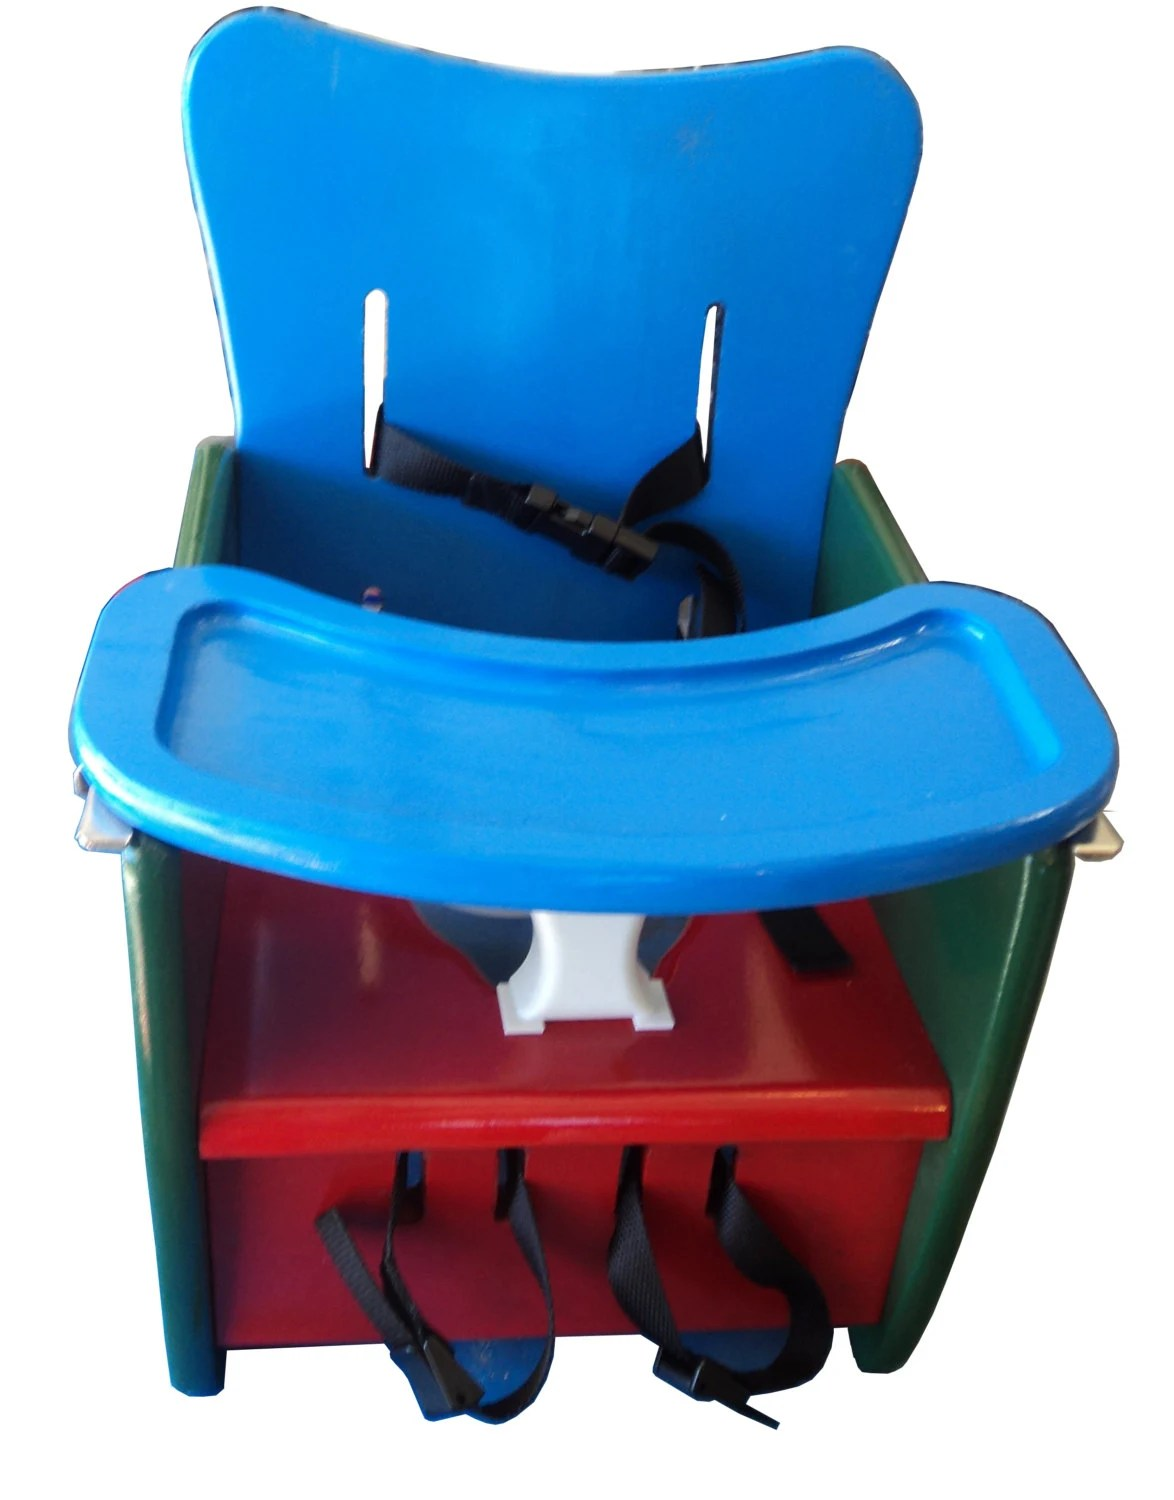 wooden potty chair rocking gliders with tray old fashioned by 1950spottychairs